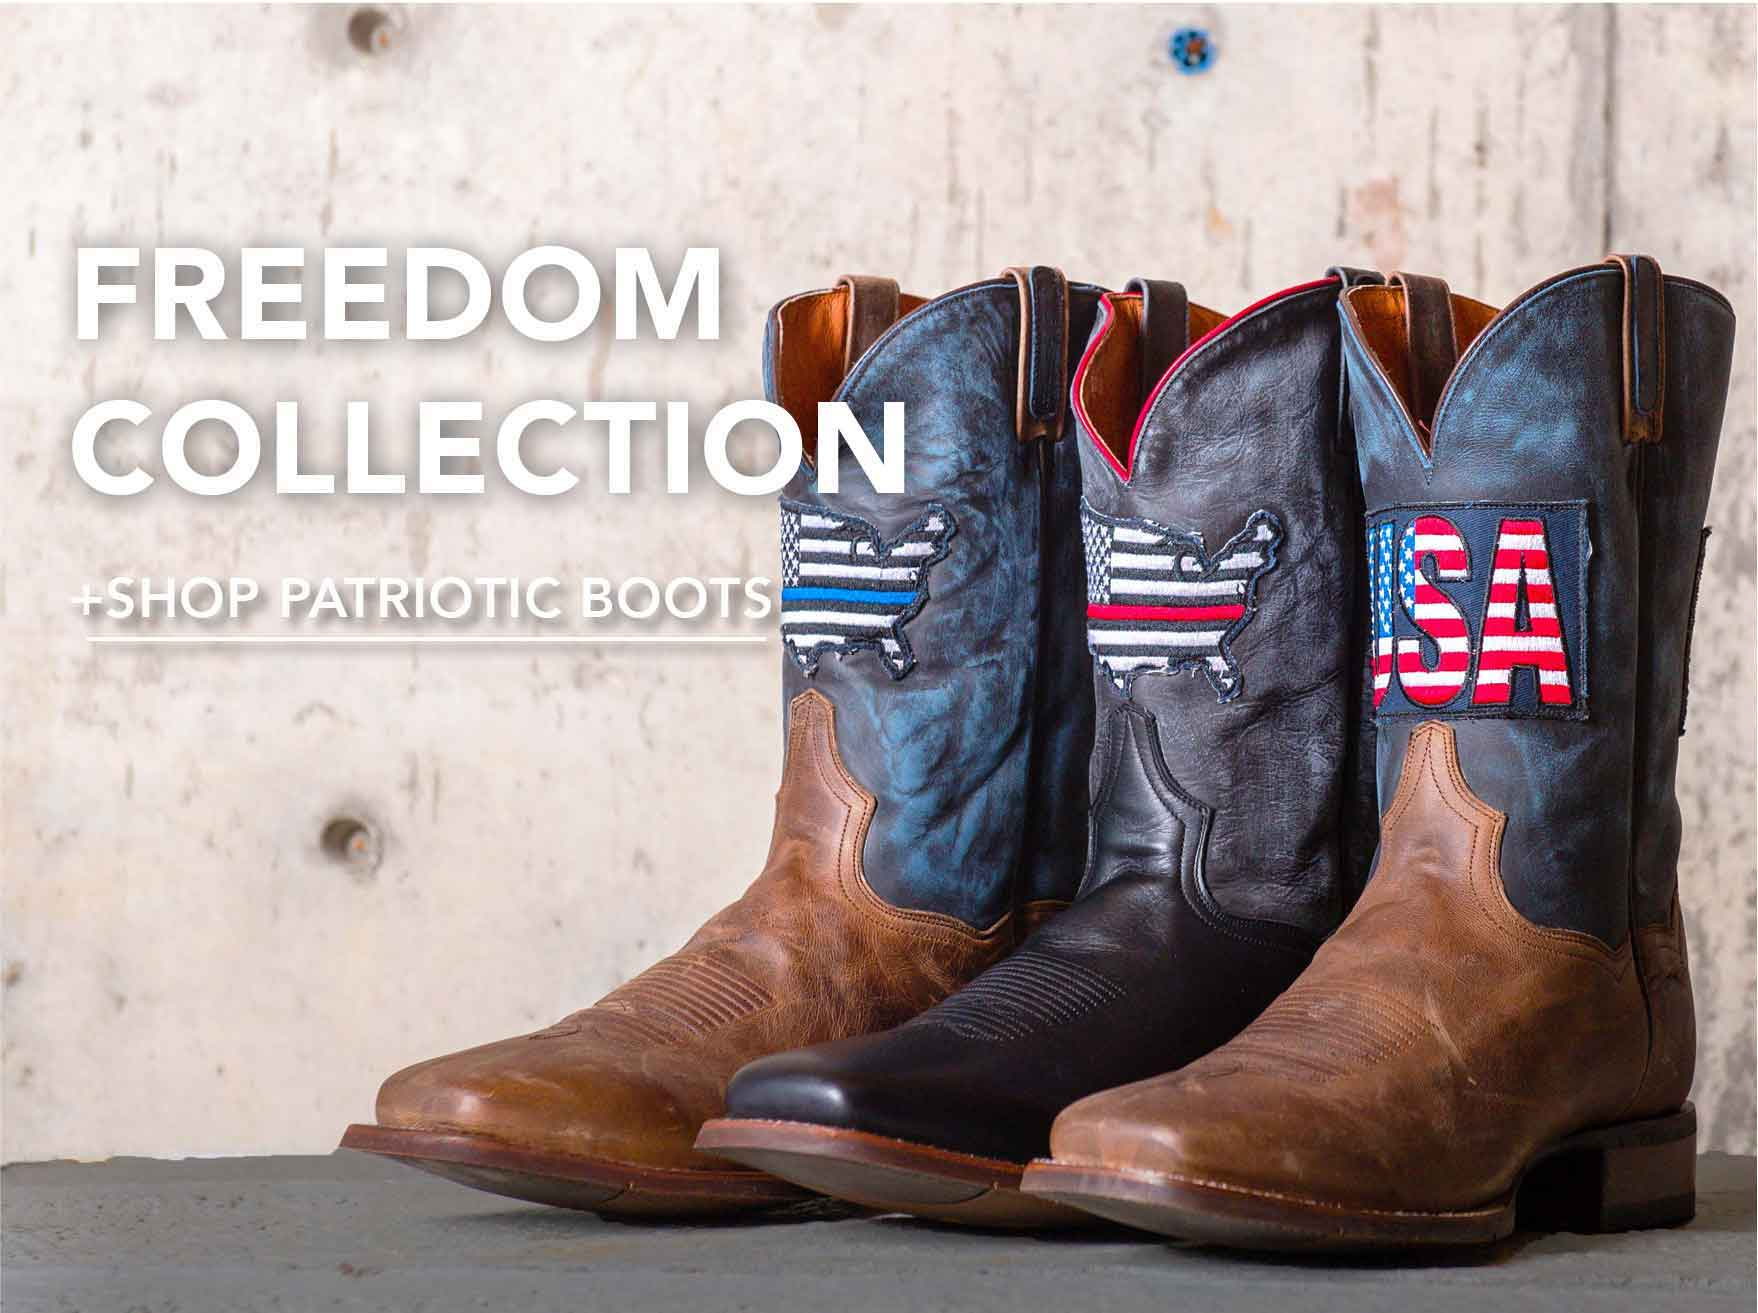 a63099a4a4c Dan Post Boot Company – Dan Post Boots